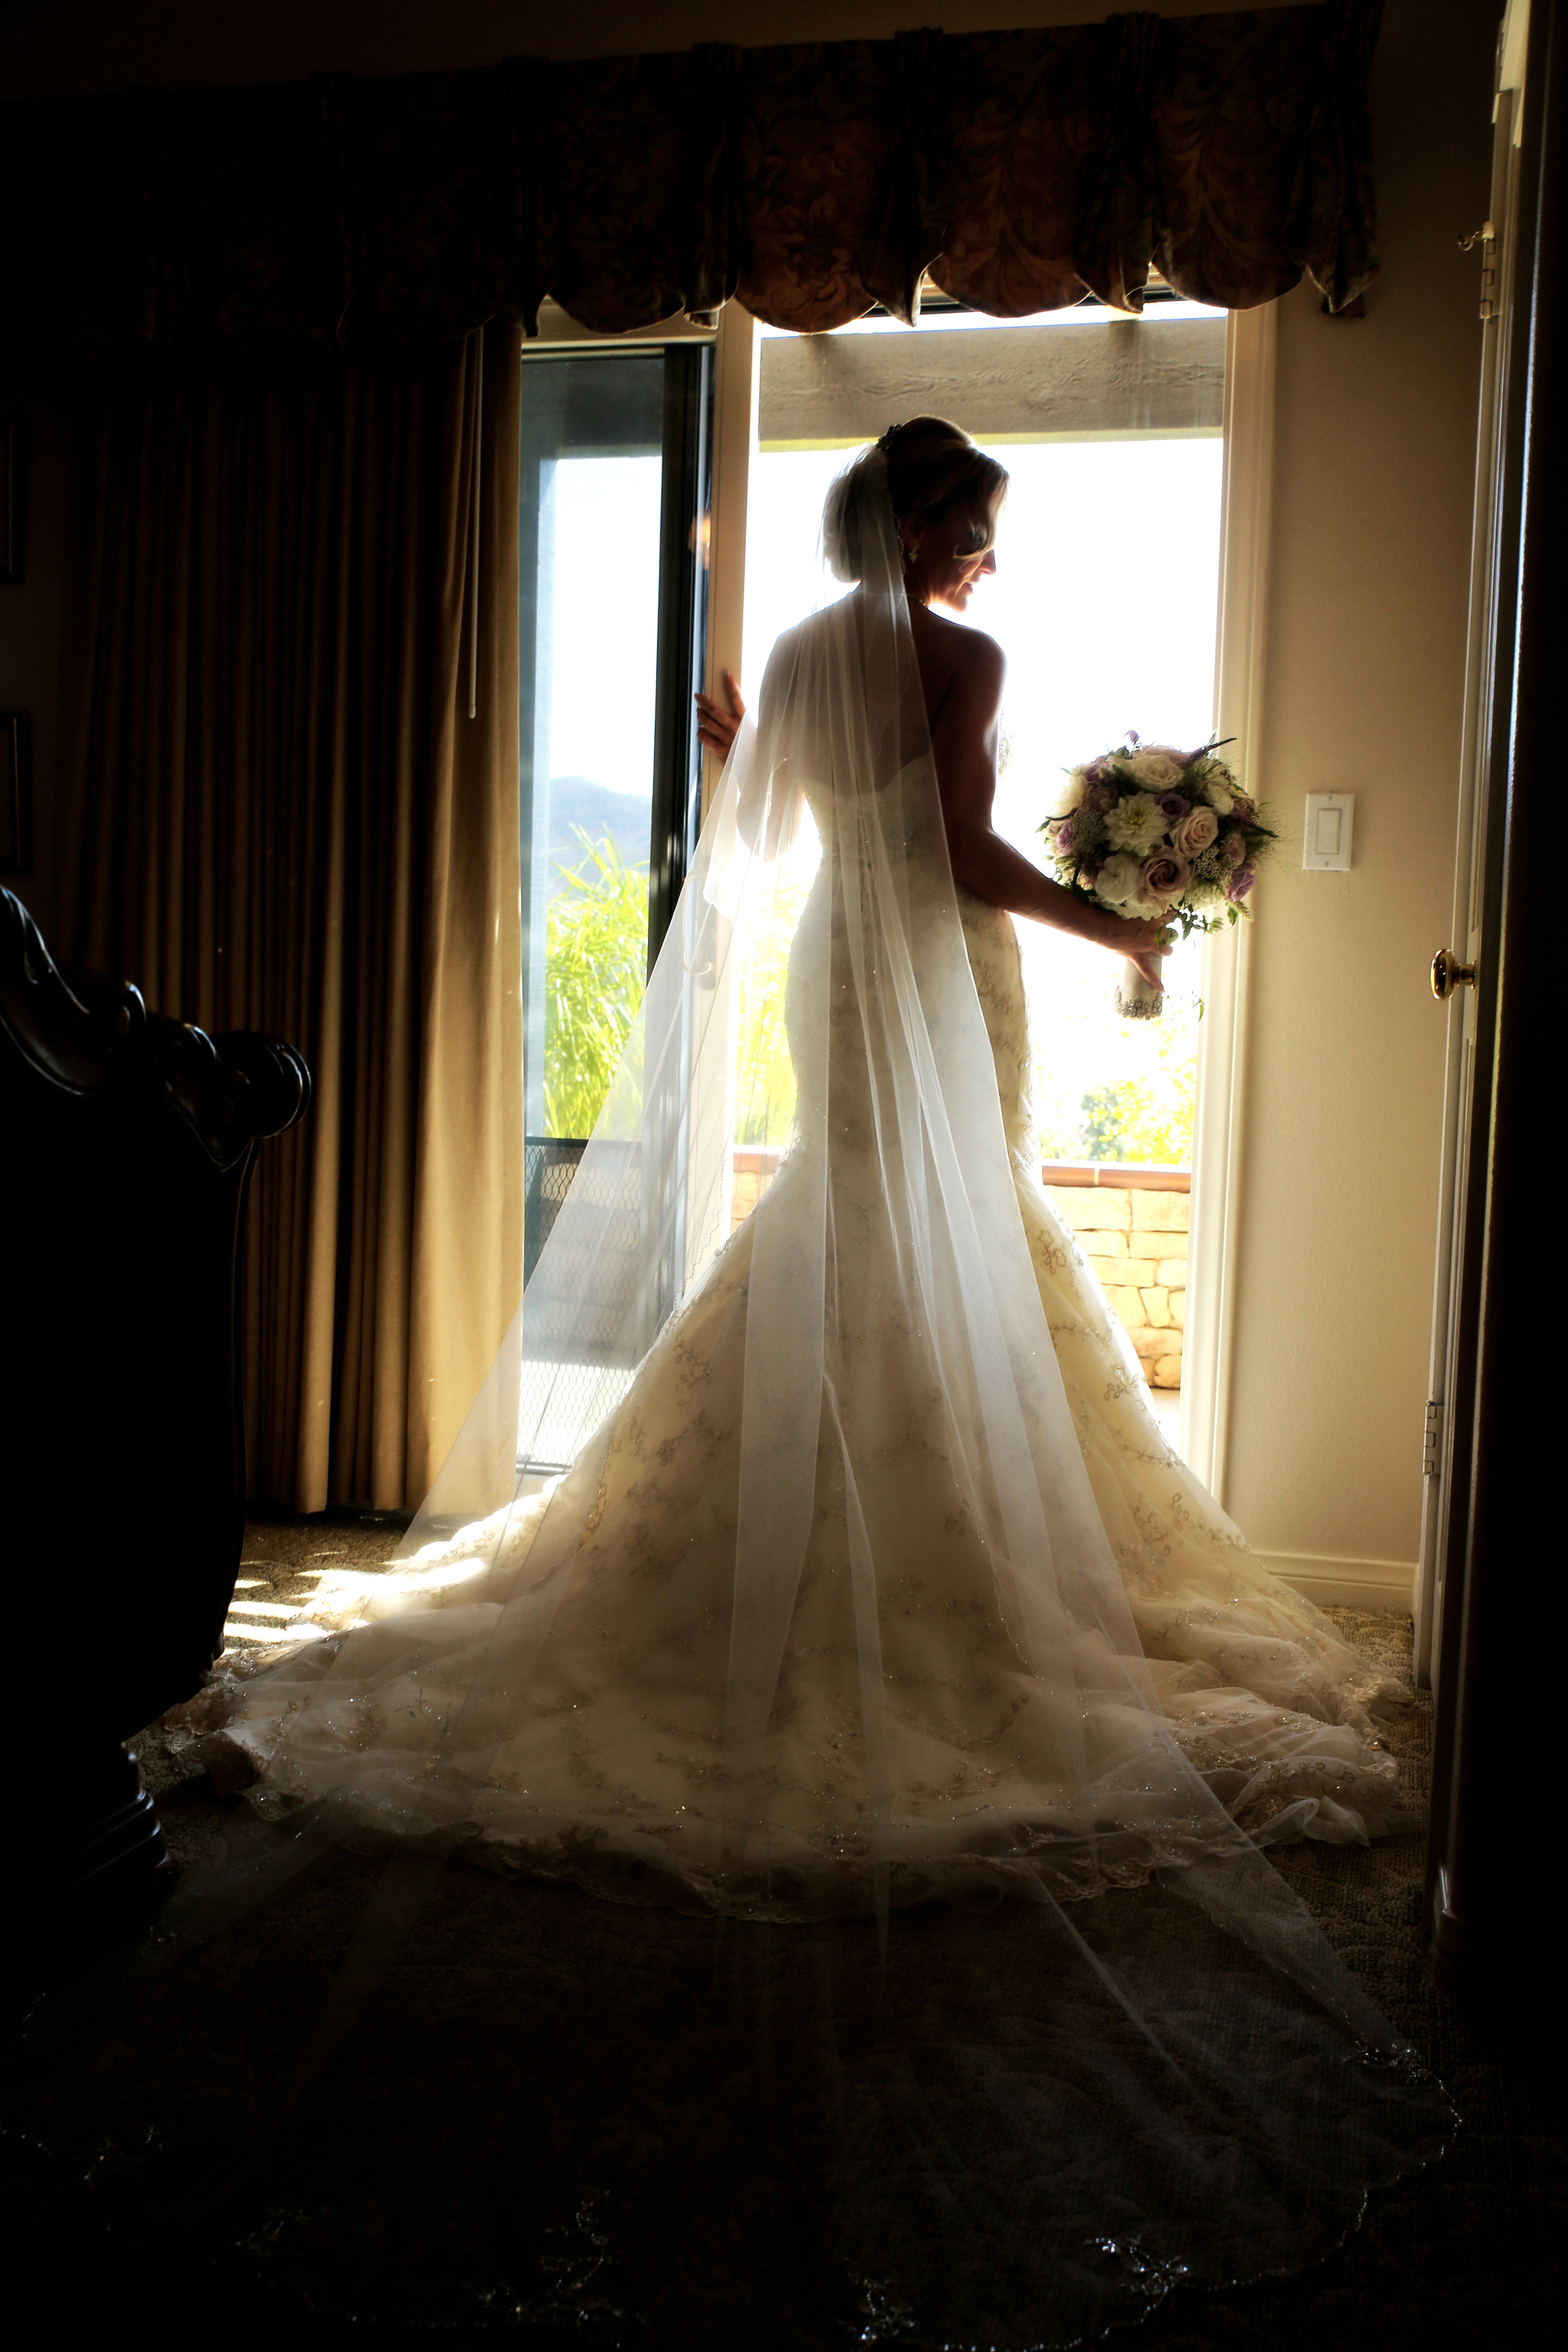 ShadowcatcherGalleryOne_SanDiegoWeddingPhotogrpaher_030.JPG